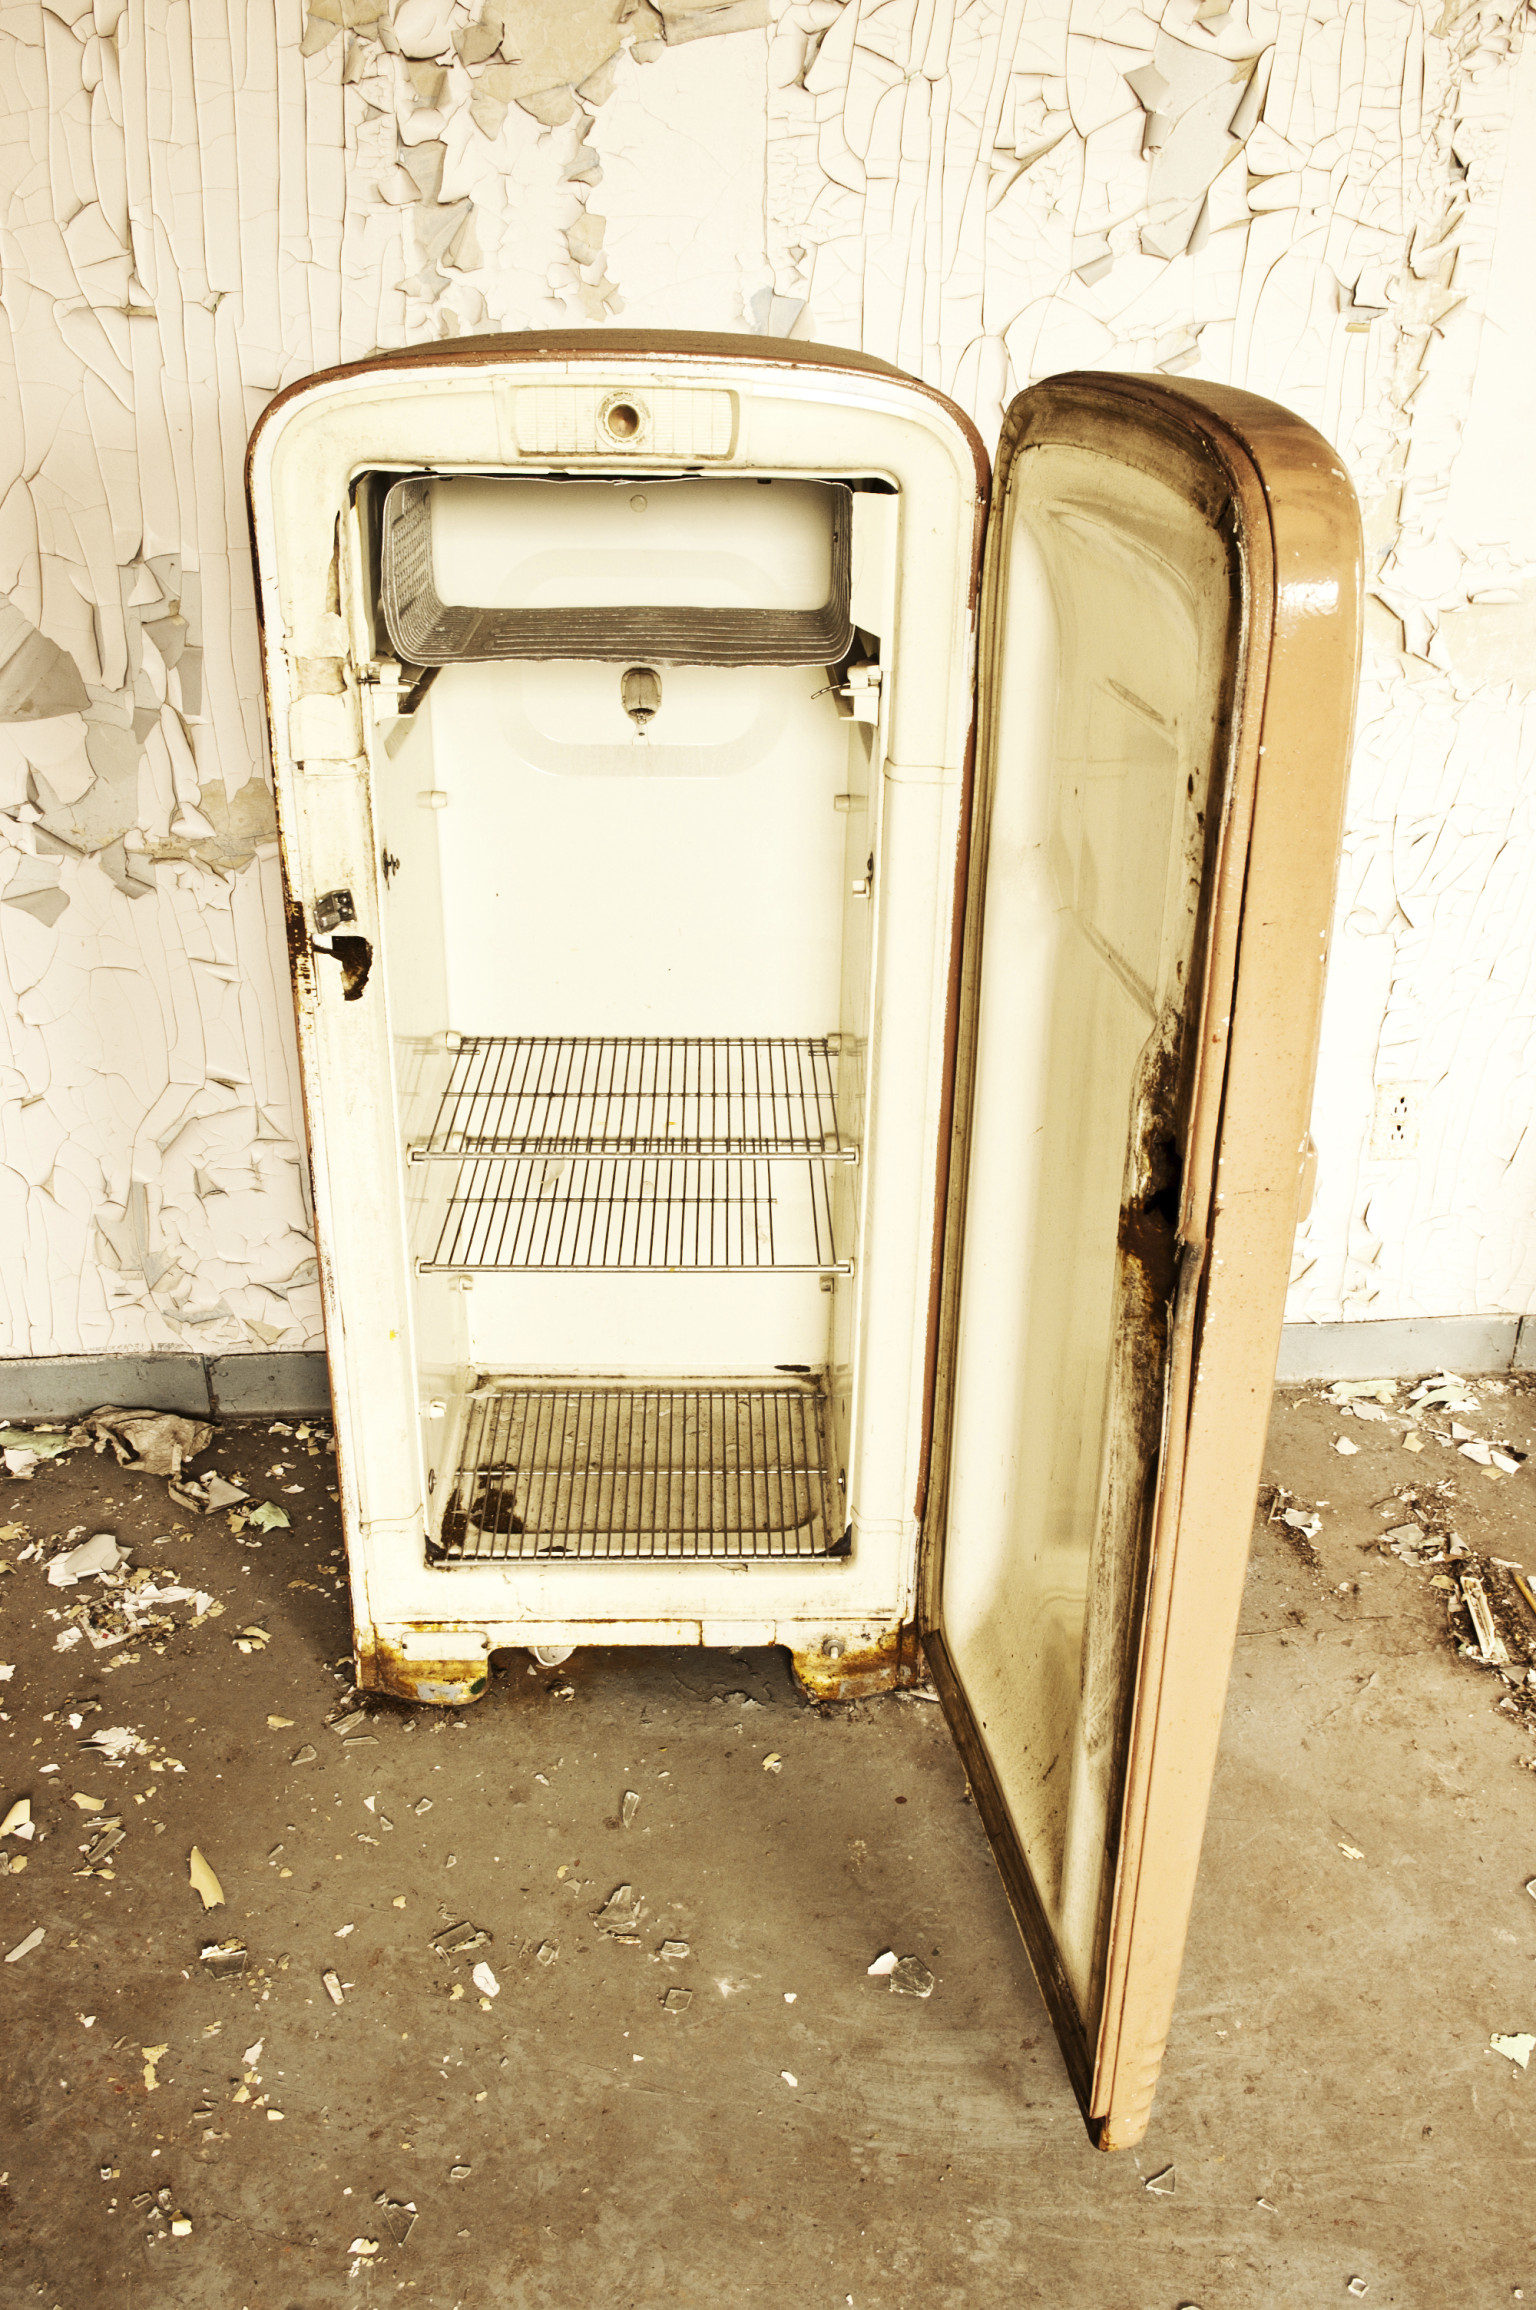 America's Oldest Fridge? 85-Year-Old Machine Still Running